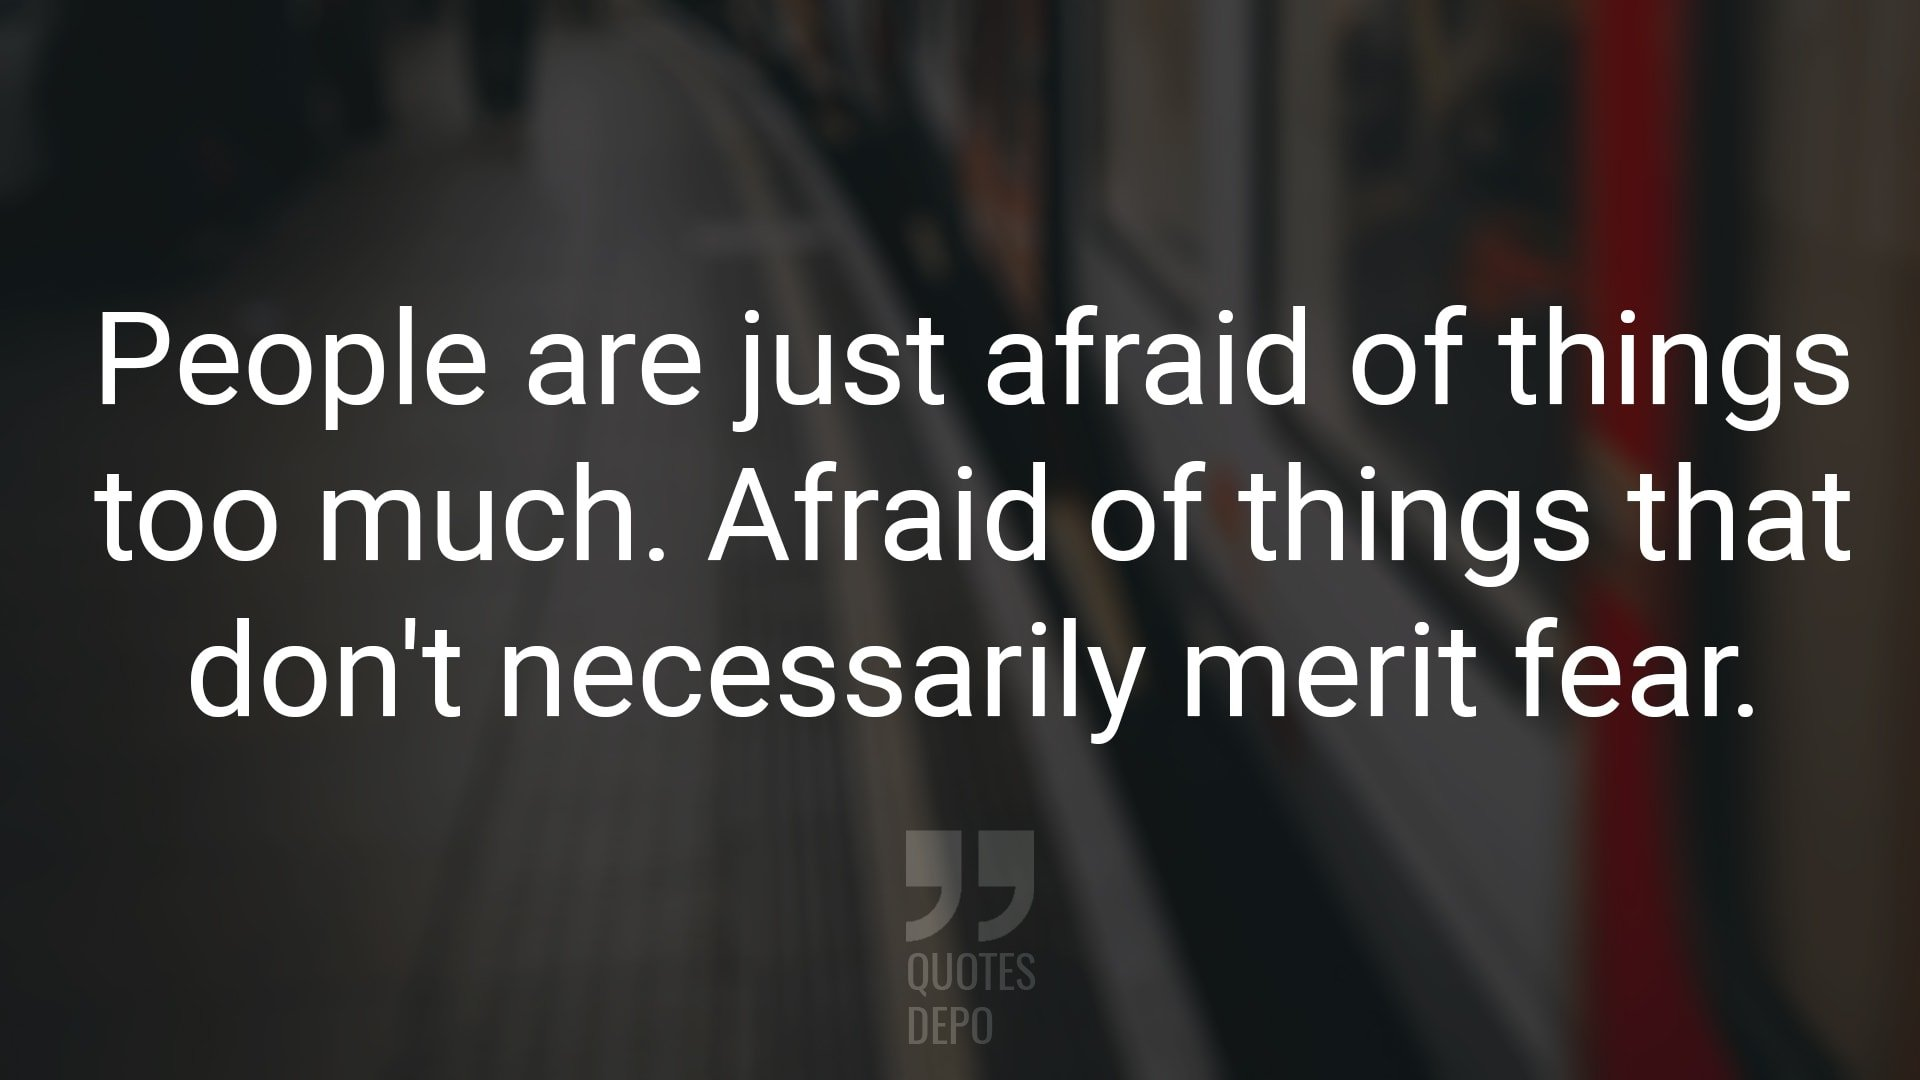 People are Just Afraid of Things too Much